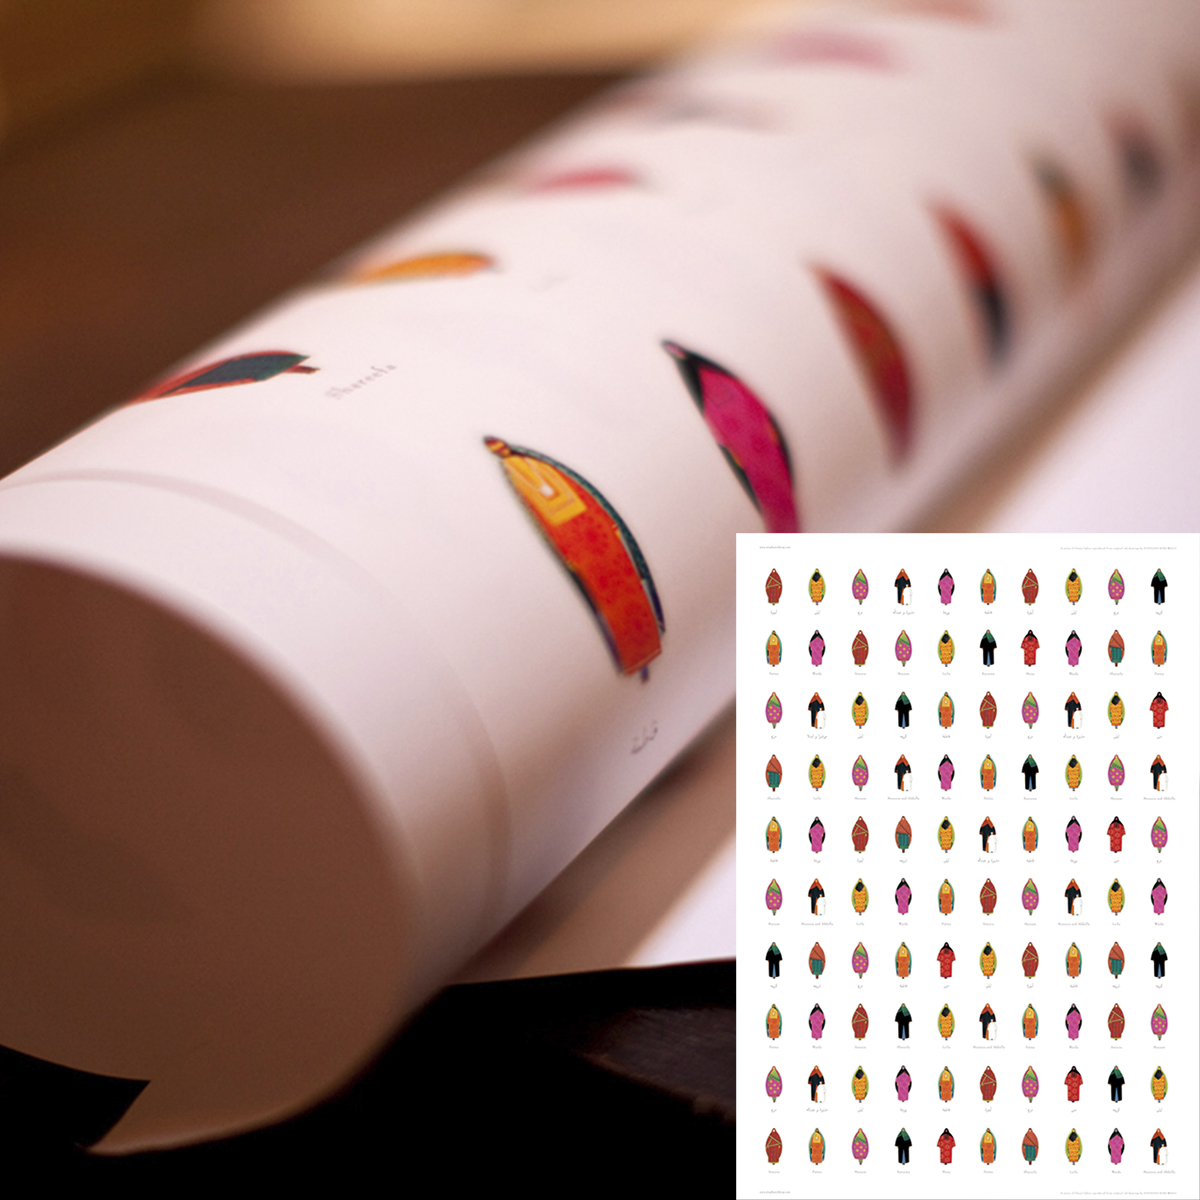 5 Sheets of Gift Wrap Paper with Omani Women